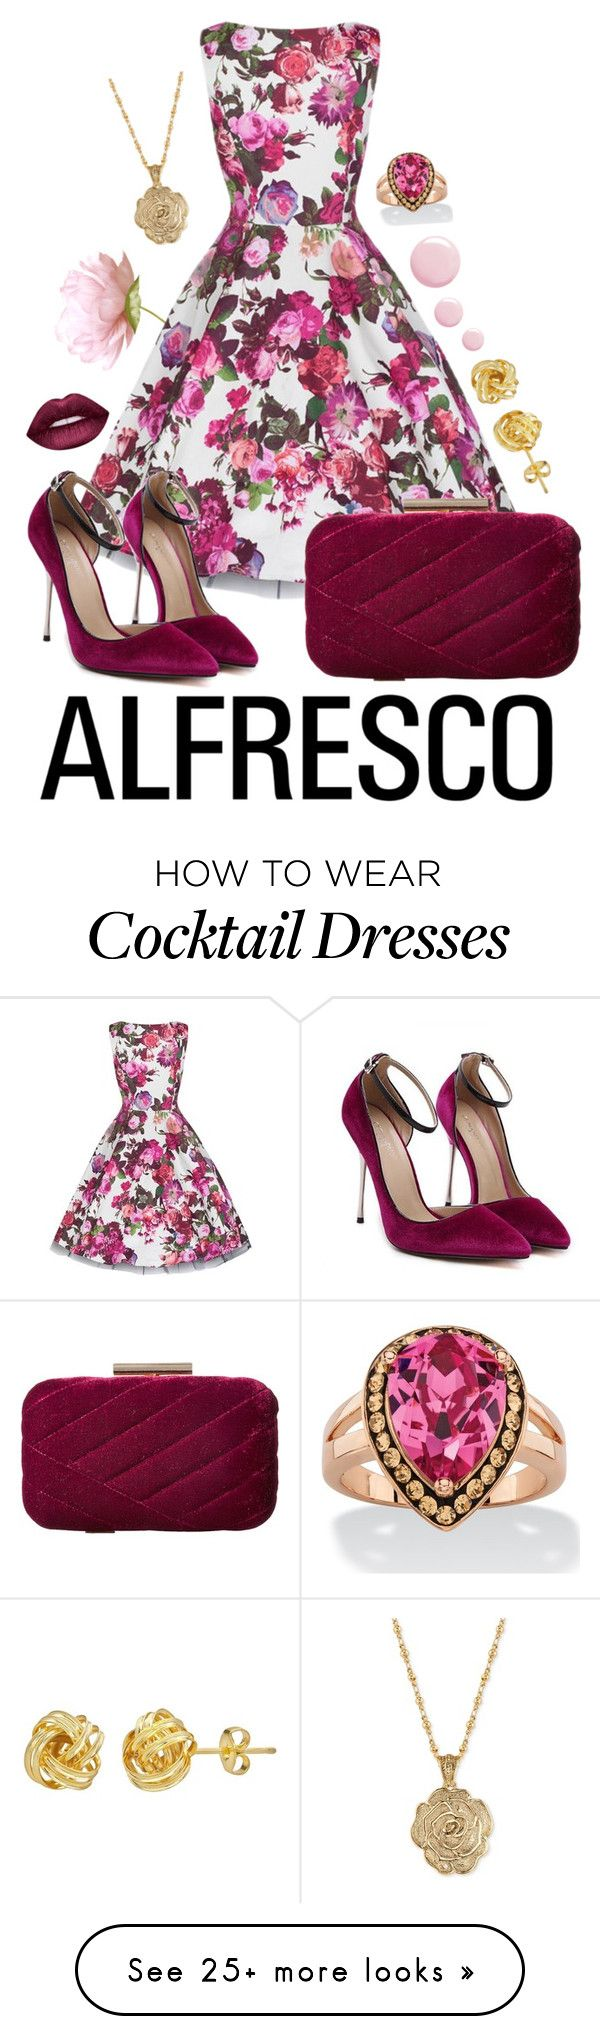 """""""Alfresco Dining Summer Dress"""" by stellap123 on Polyvore featuring Jessica McClintock, 2028, Lime Crime and Topshop"""